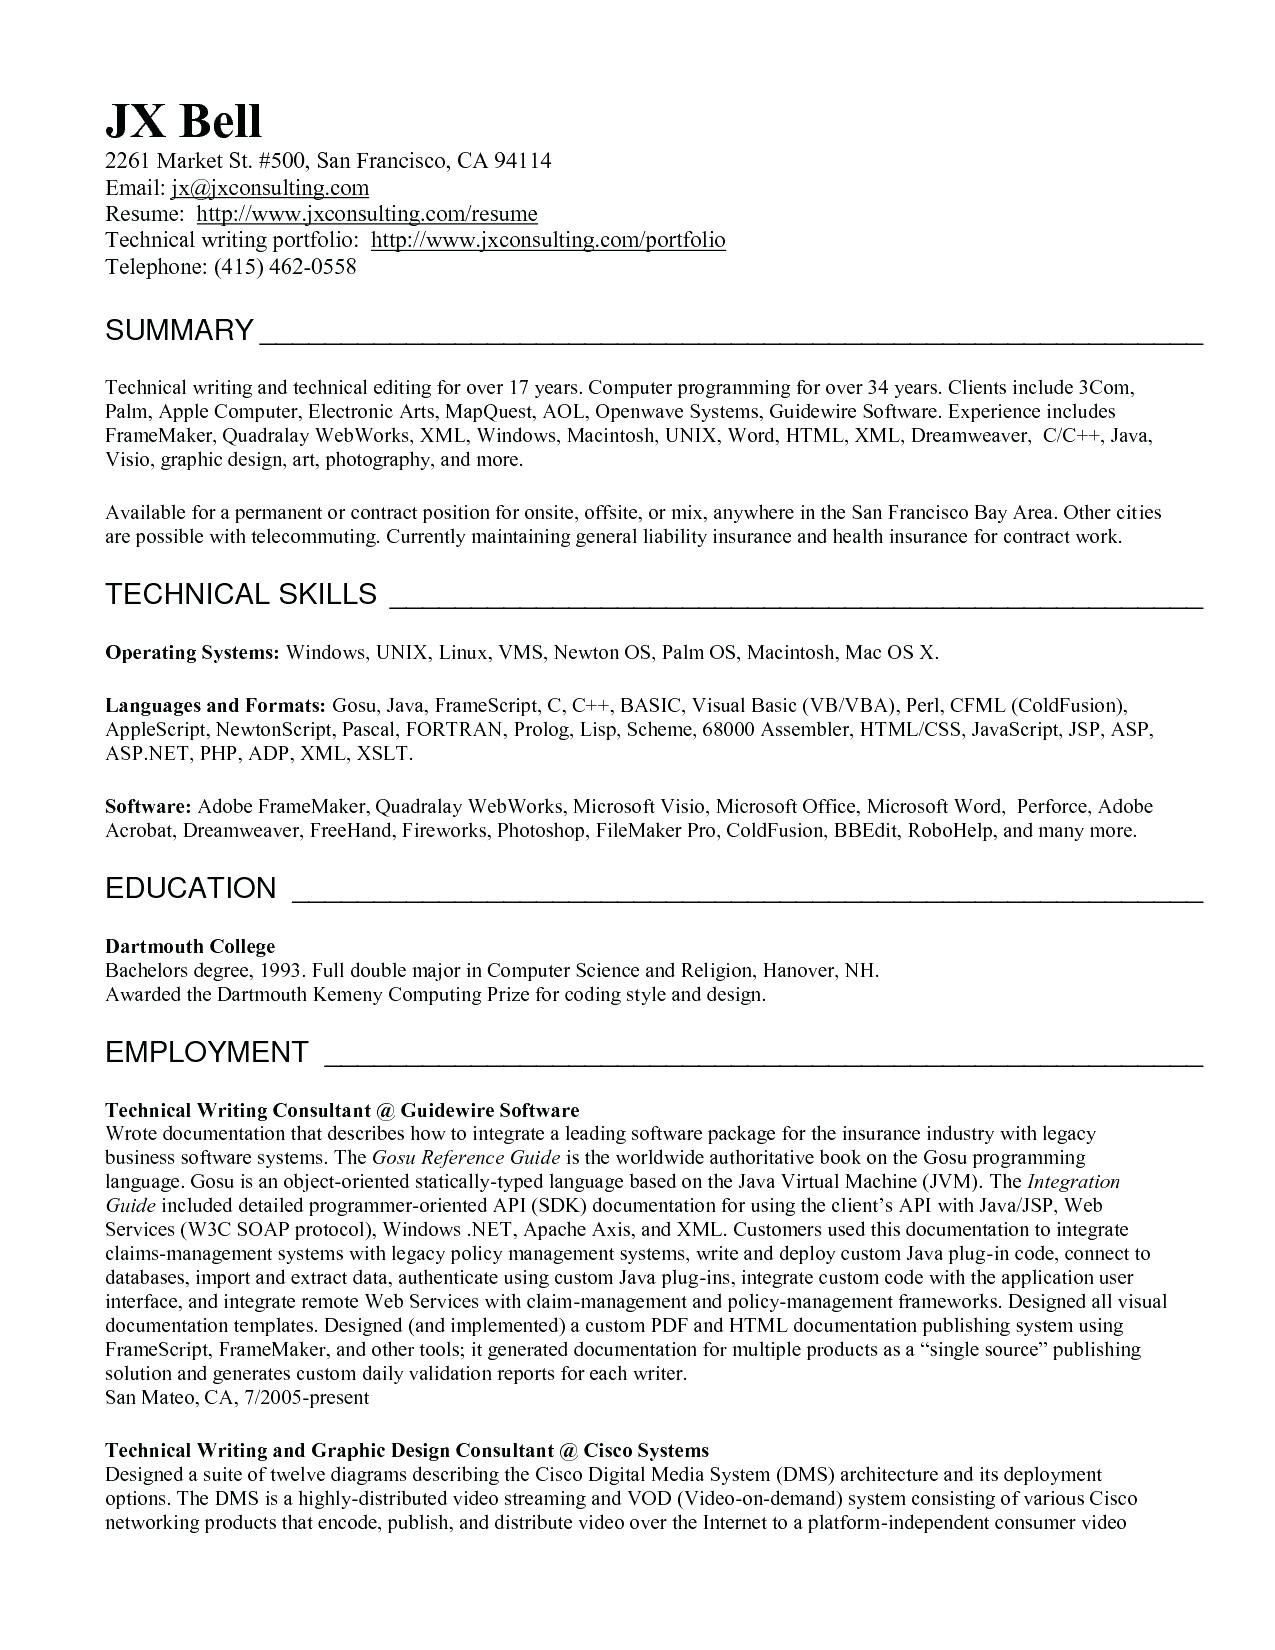 10 Unique Ideas For A Play Script template script template microsoft word best ideas of expository 2021